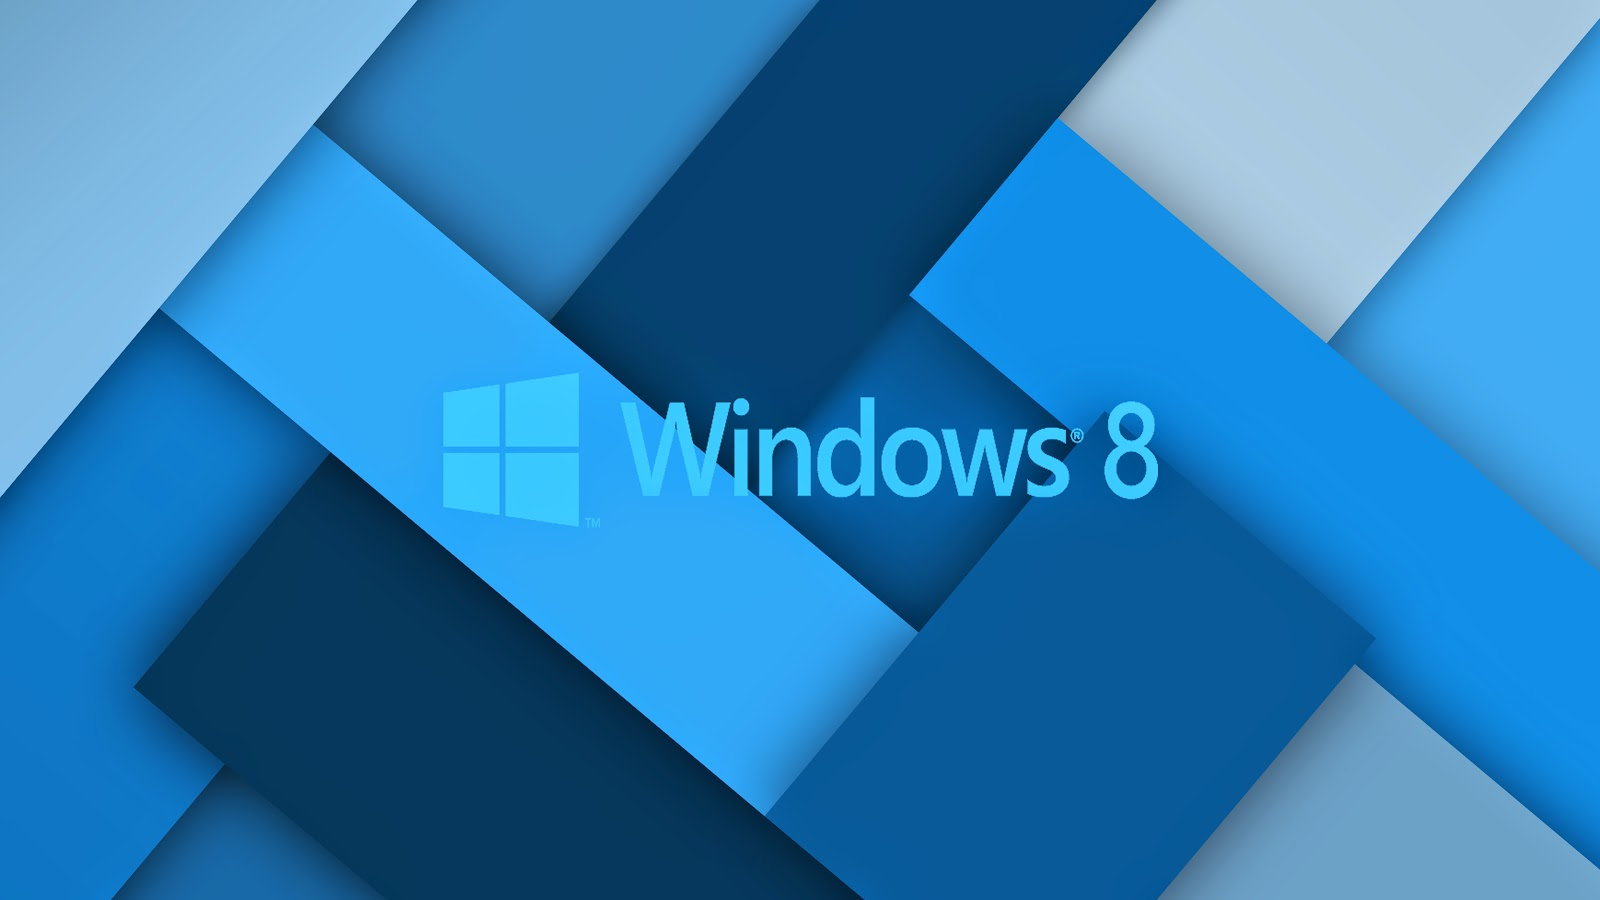 Blauen Windows 8 wallpaper